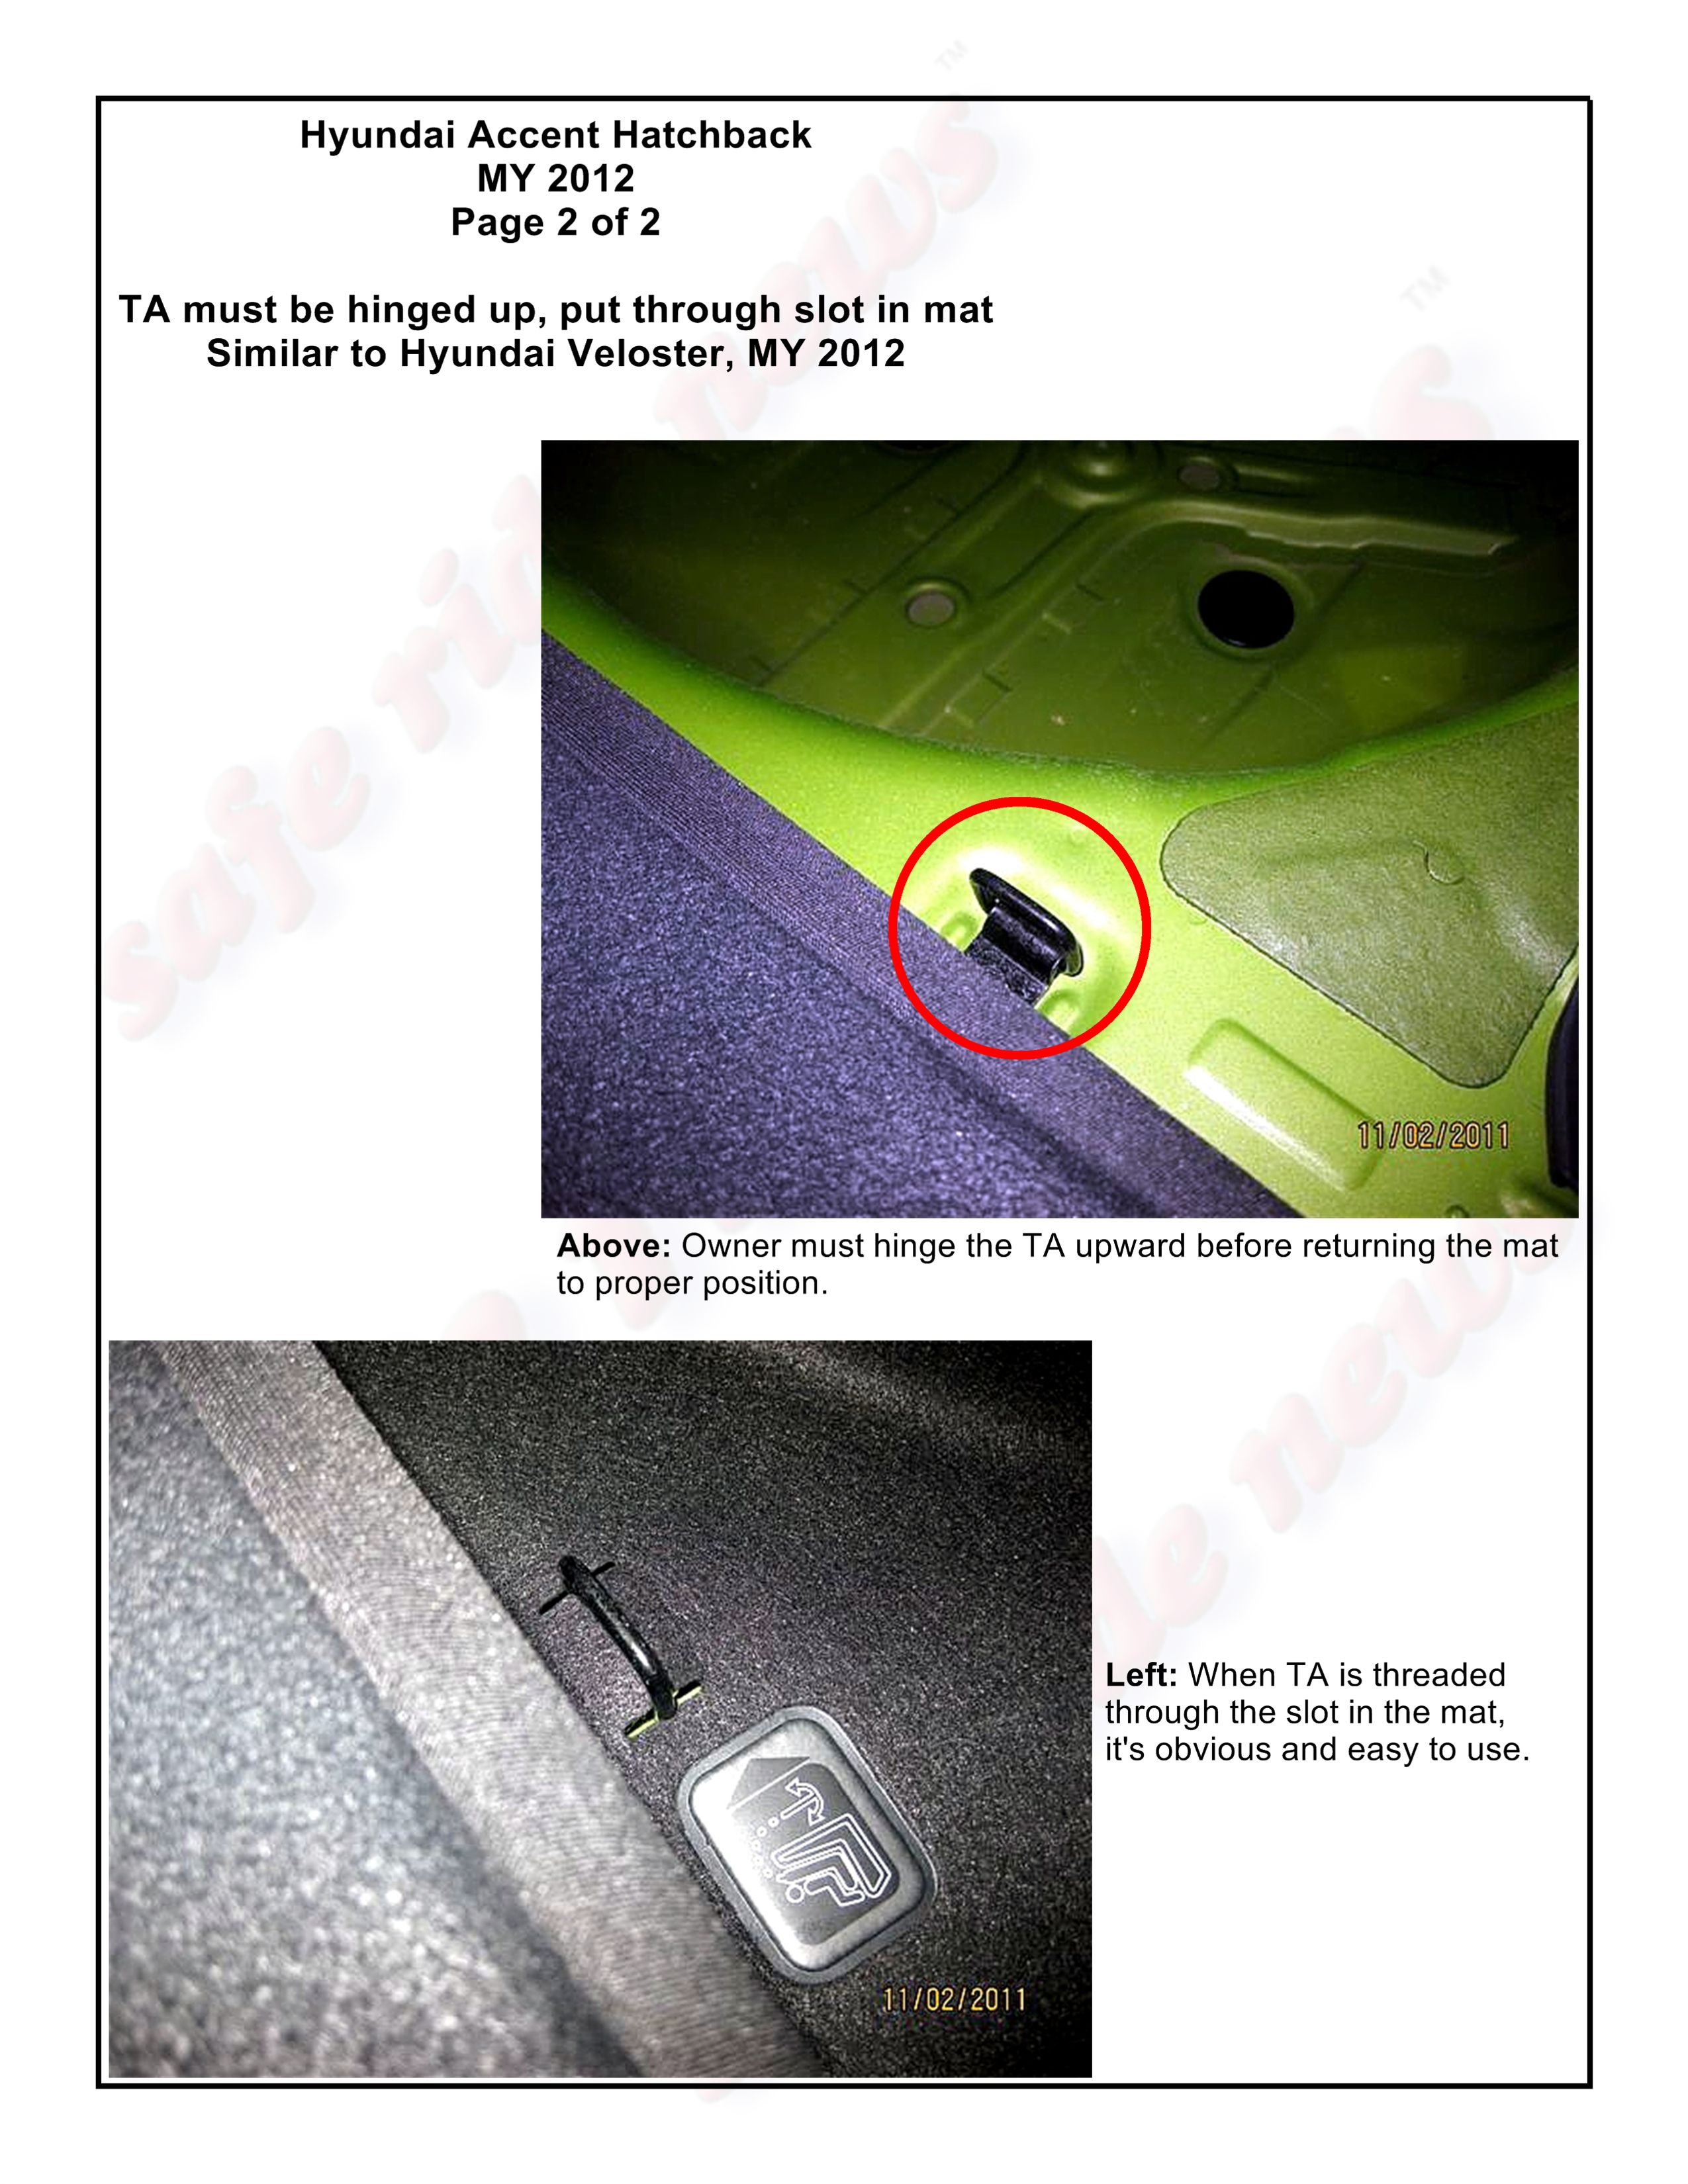 Hyundai Veloster and Accent Hatchback, MY 2012, Page 2 of 2